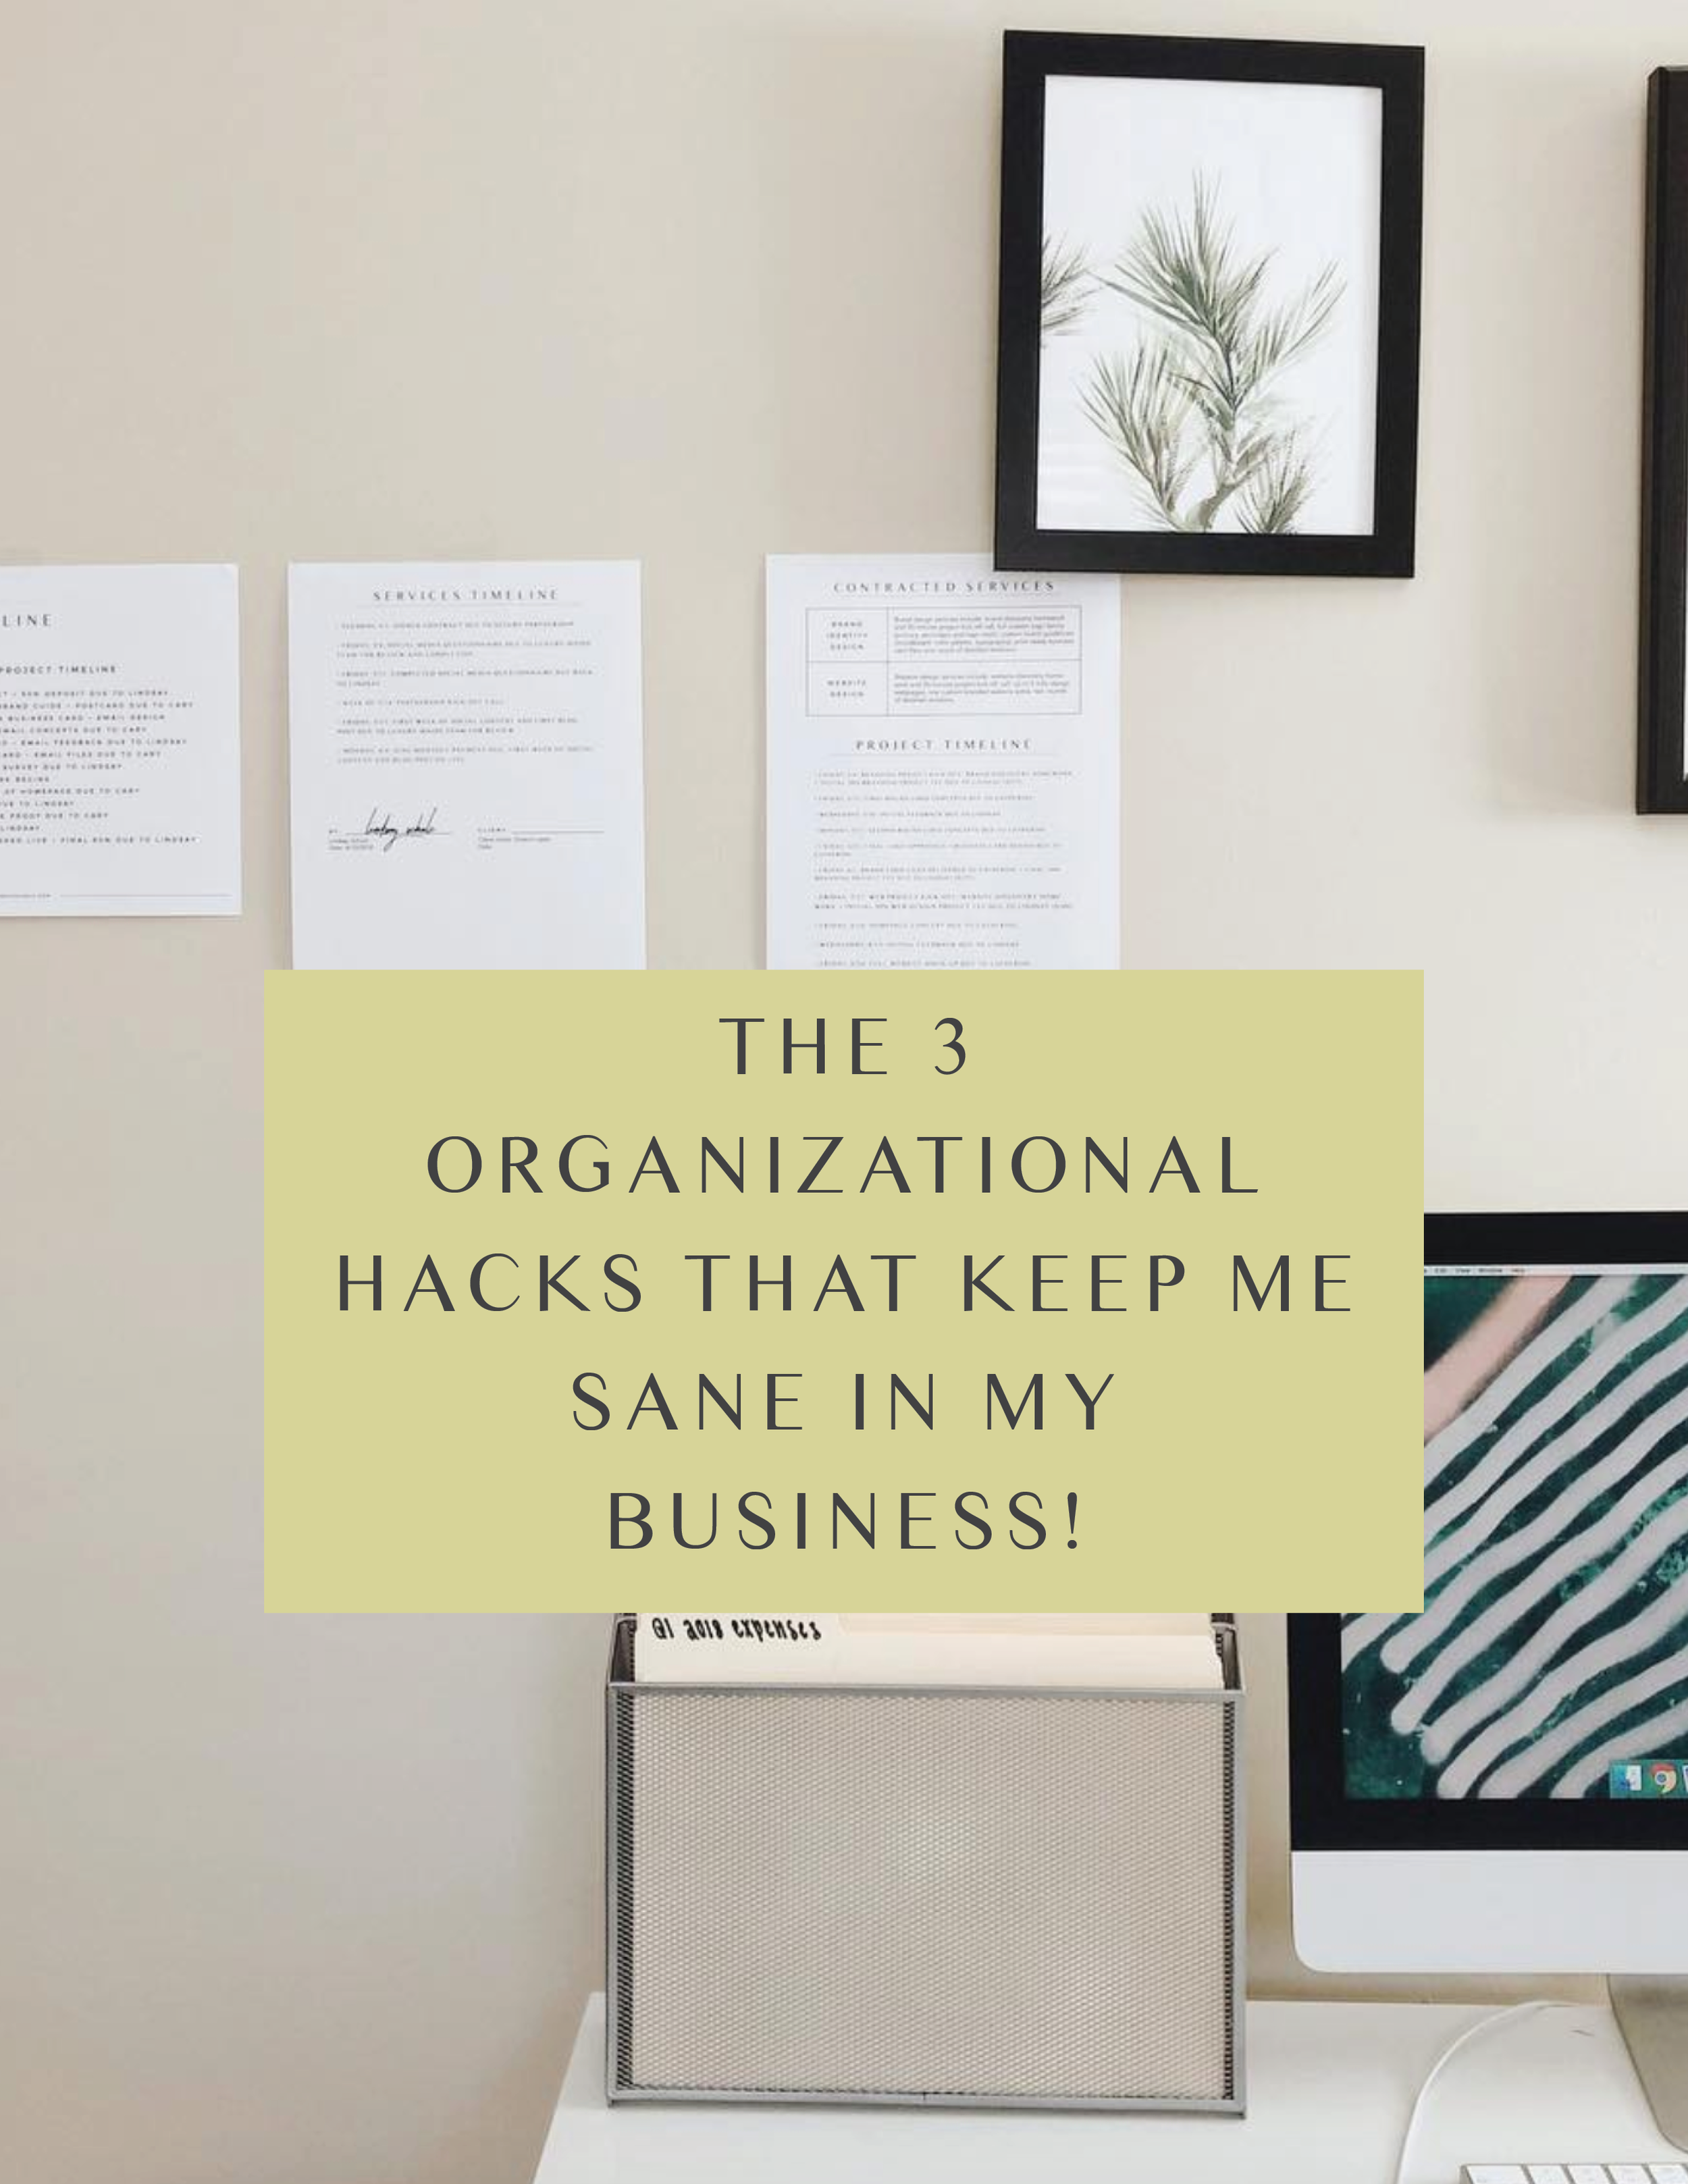 The 3 Organizational Hacks That Keep Me Sane In My Business!